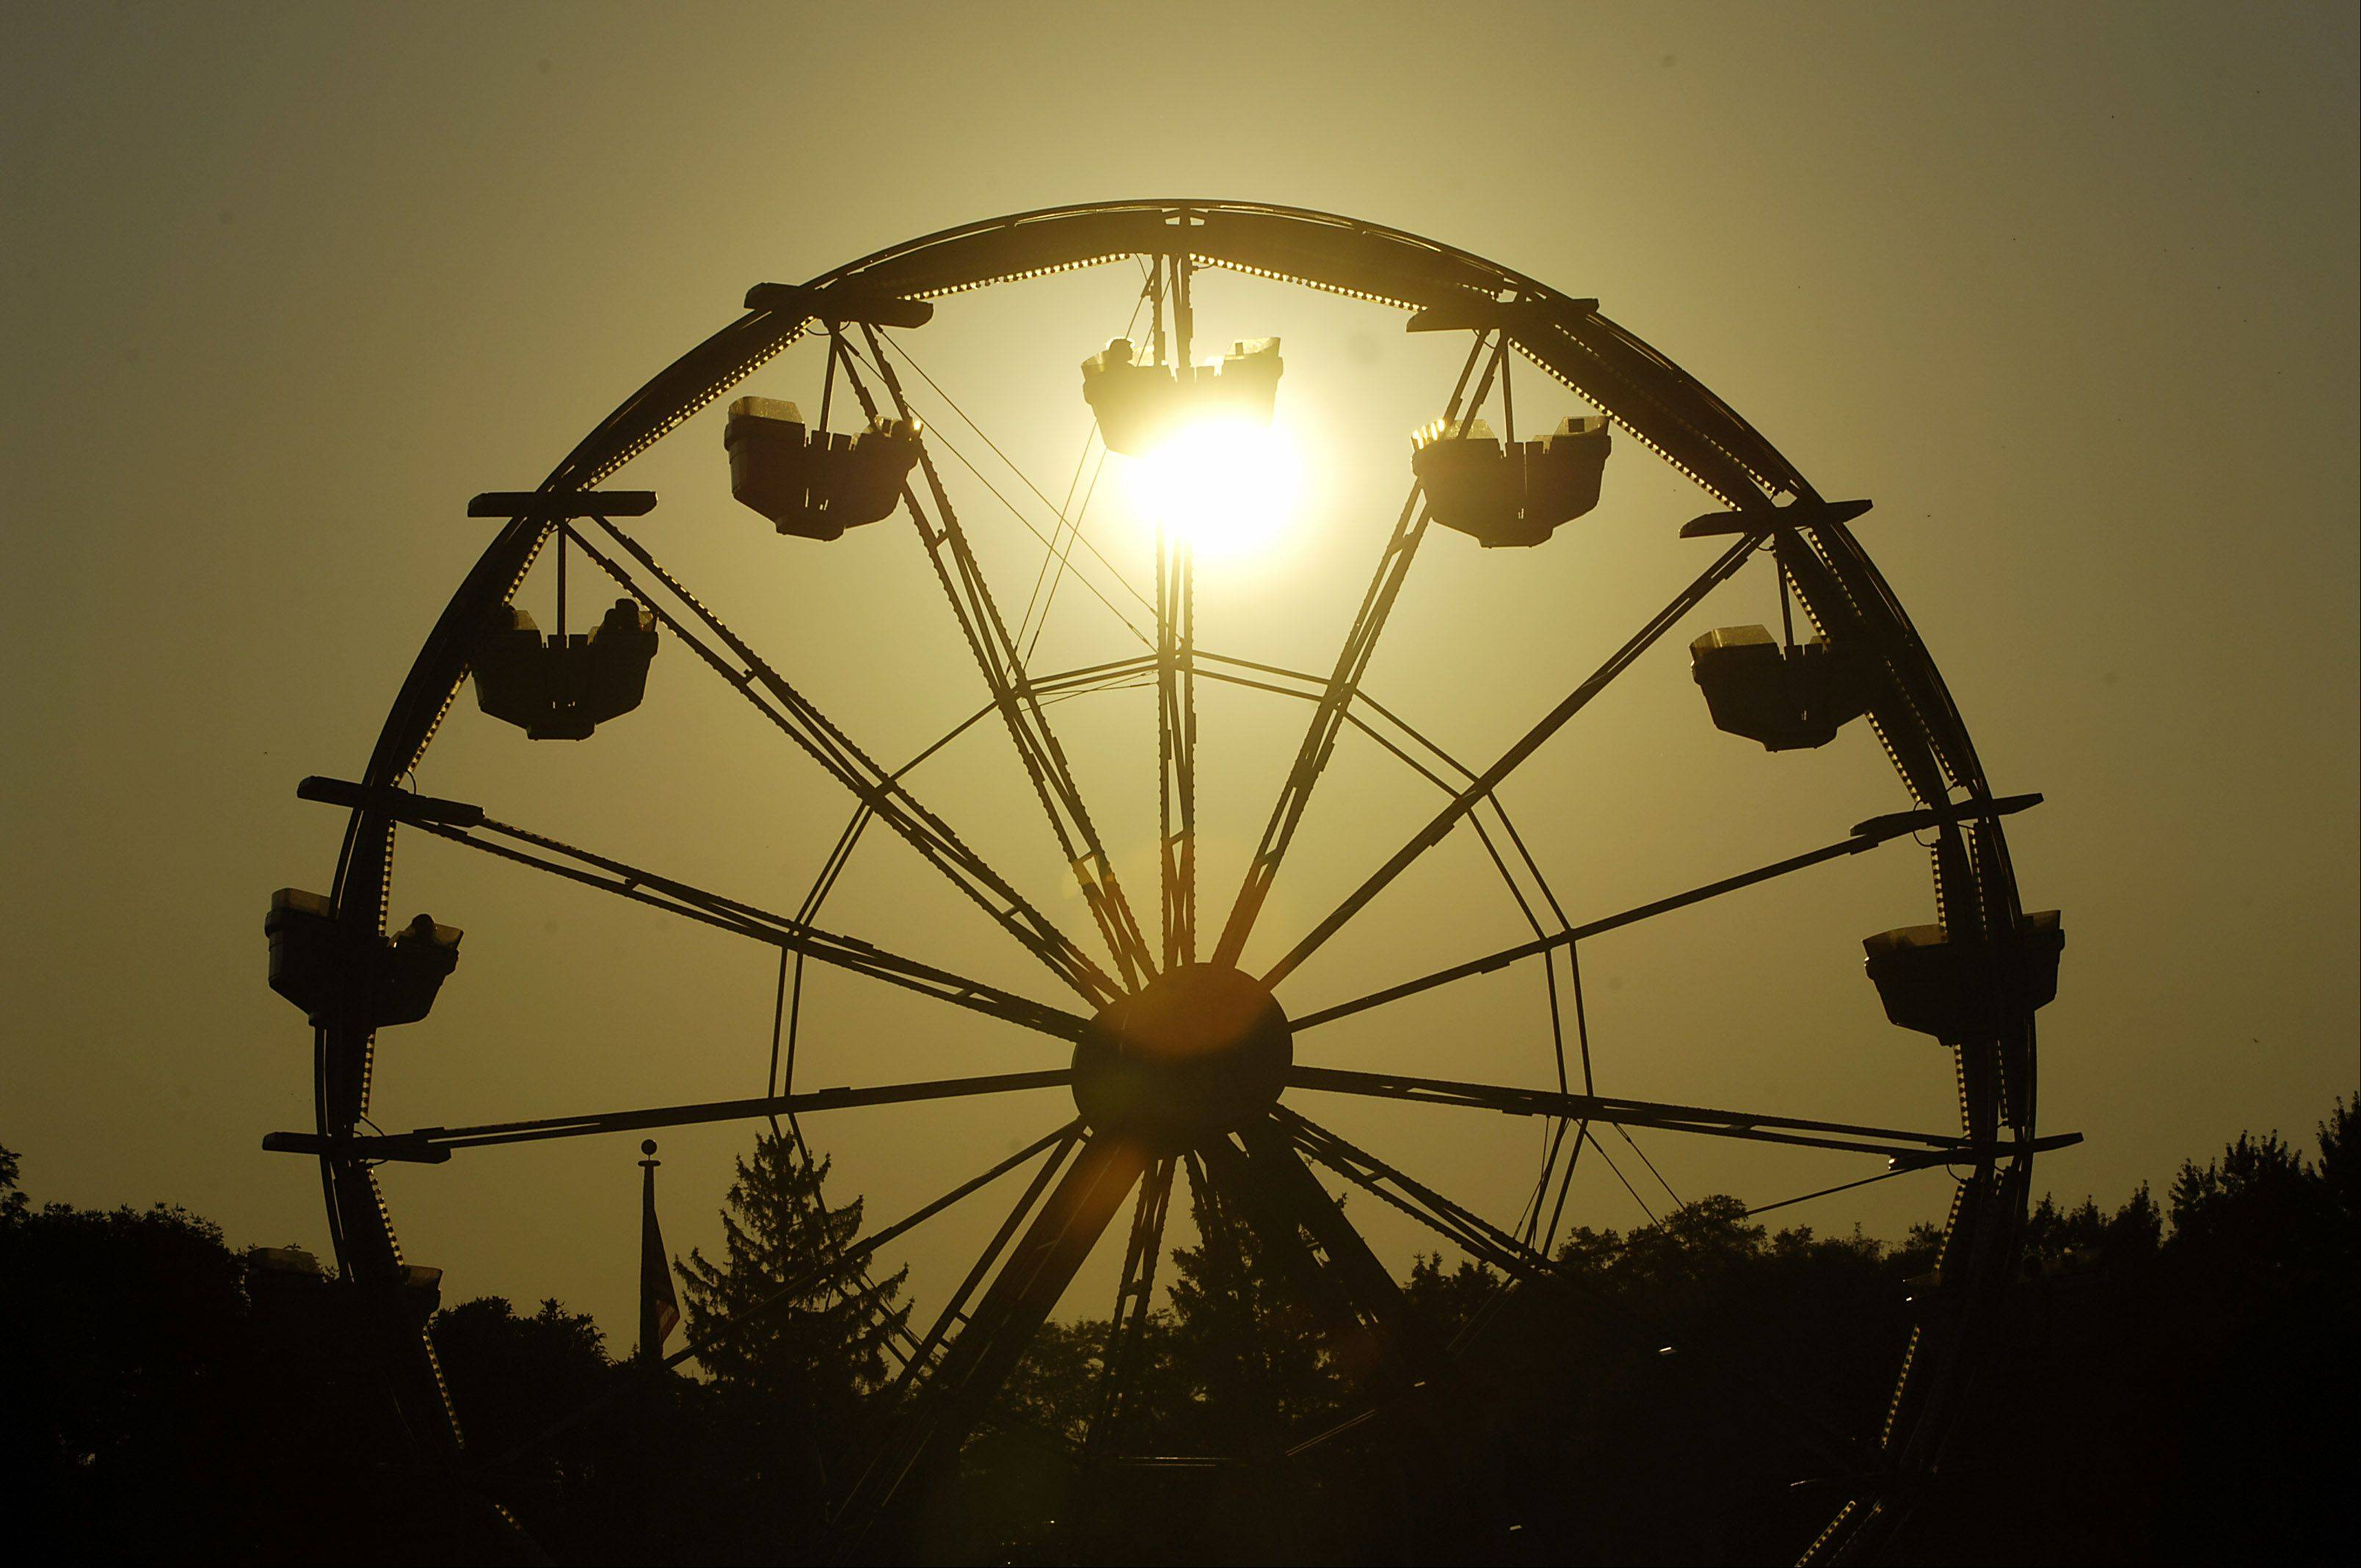 The sun sets on the opening night of South Elgin�s RiverFest Express. This year, the festival runs Thursday, Aug. 15, through Sunday, Aug. 18, at Panton Mill Park.